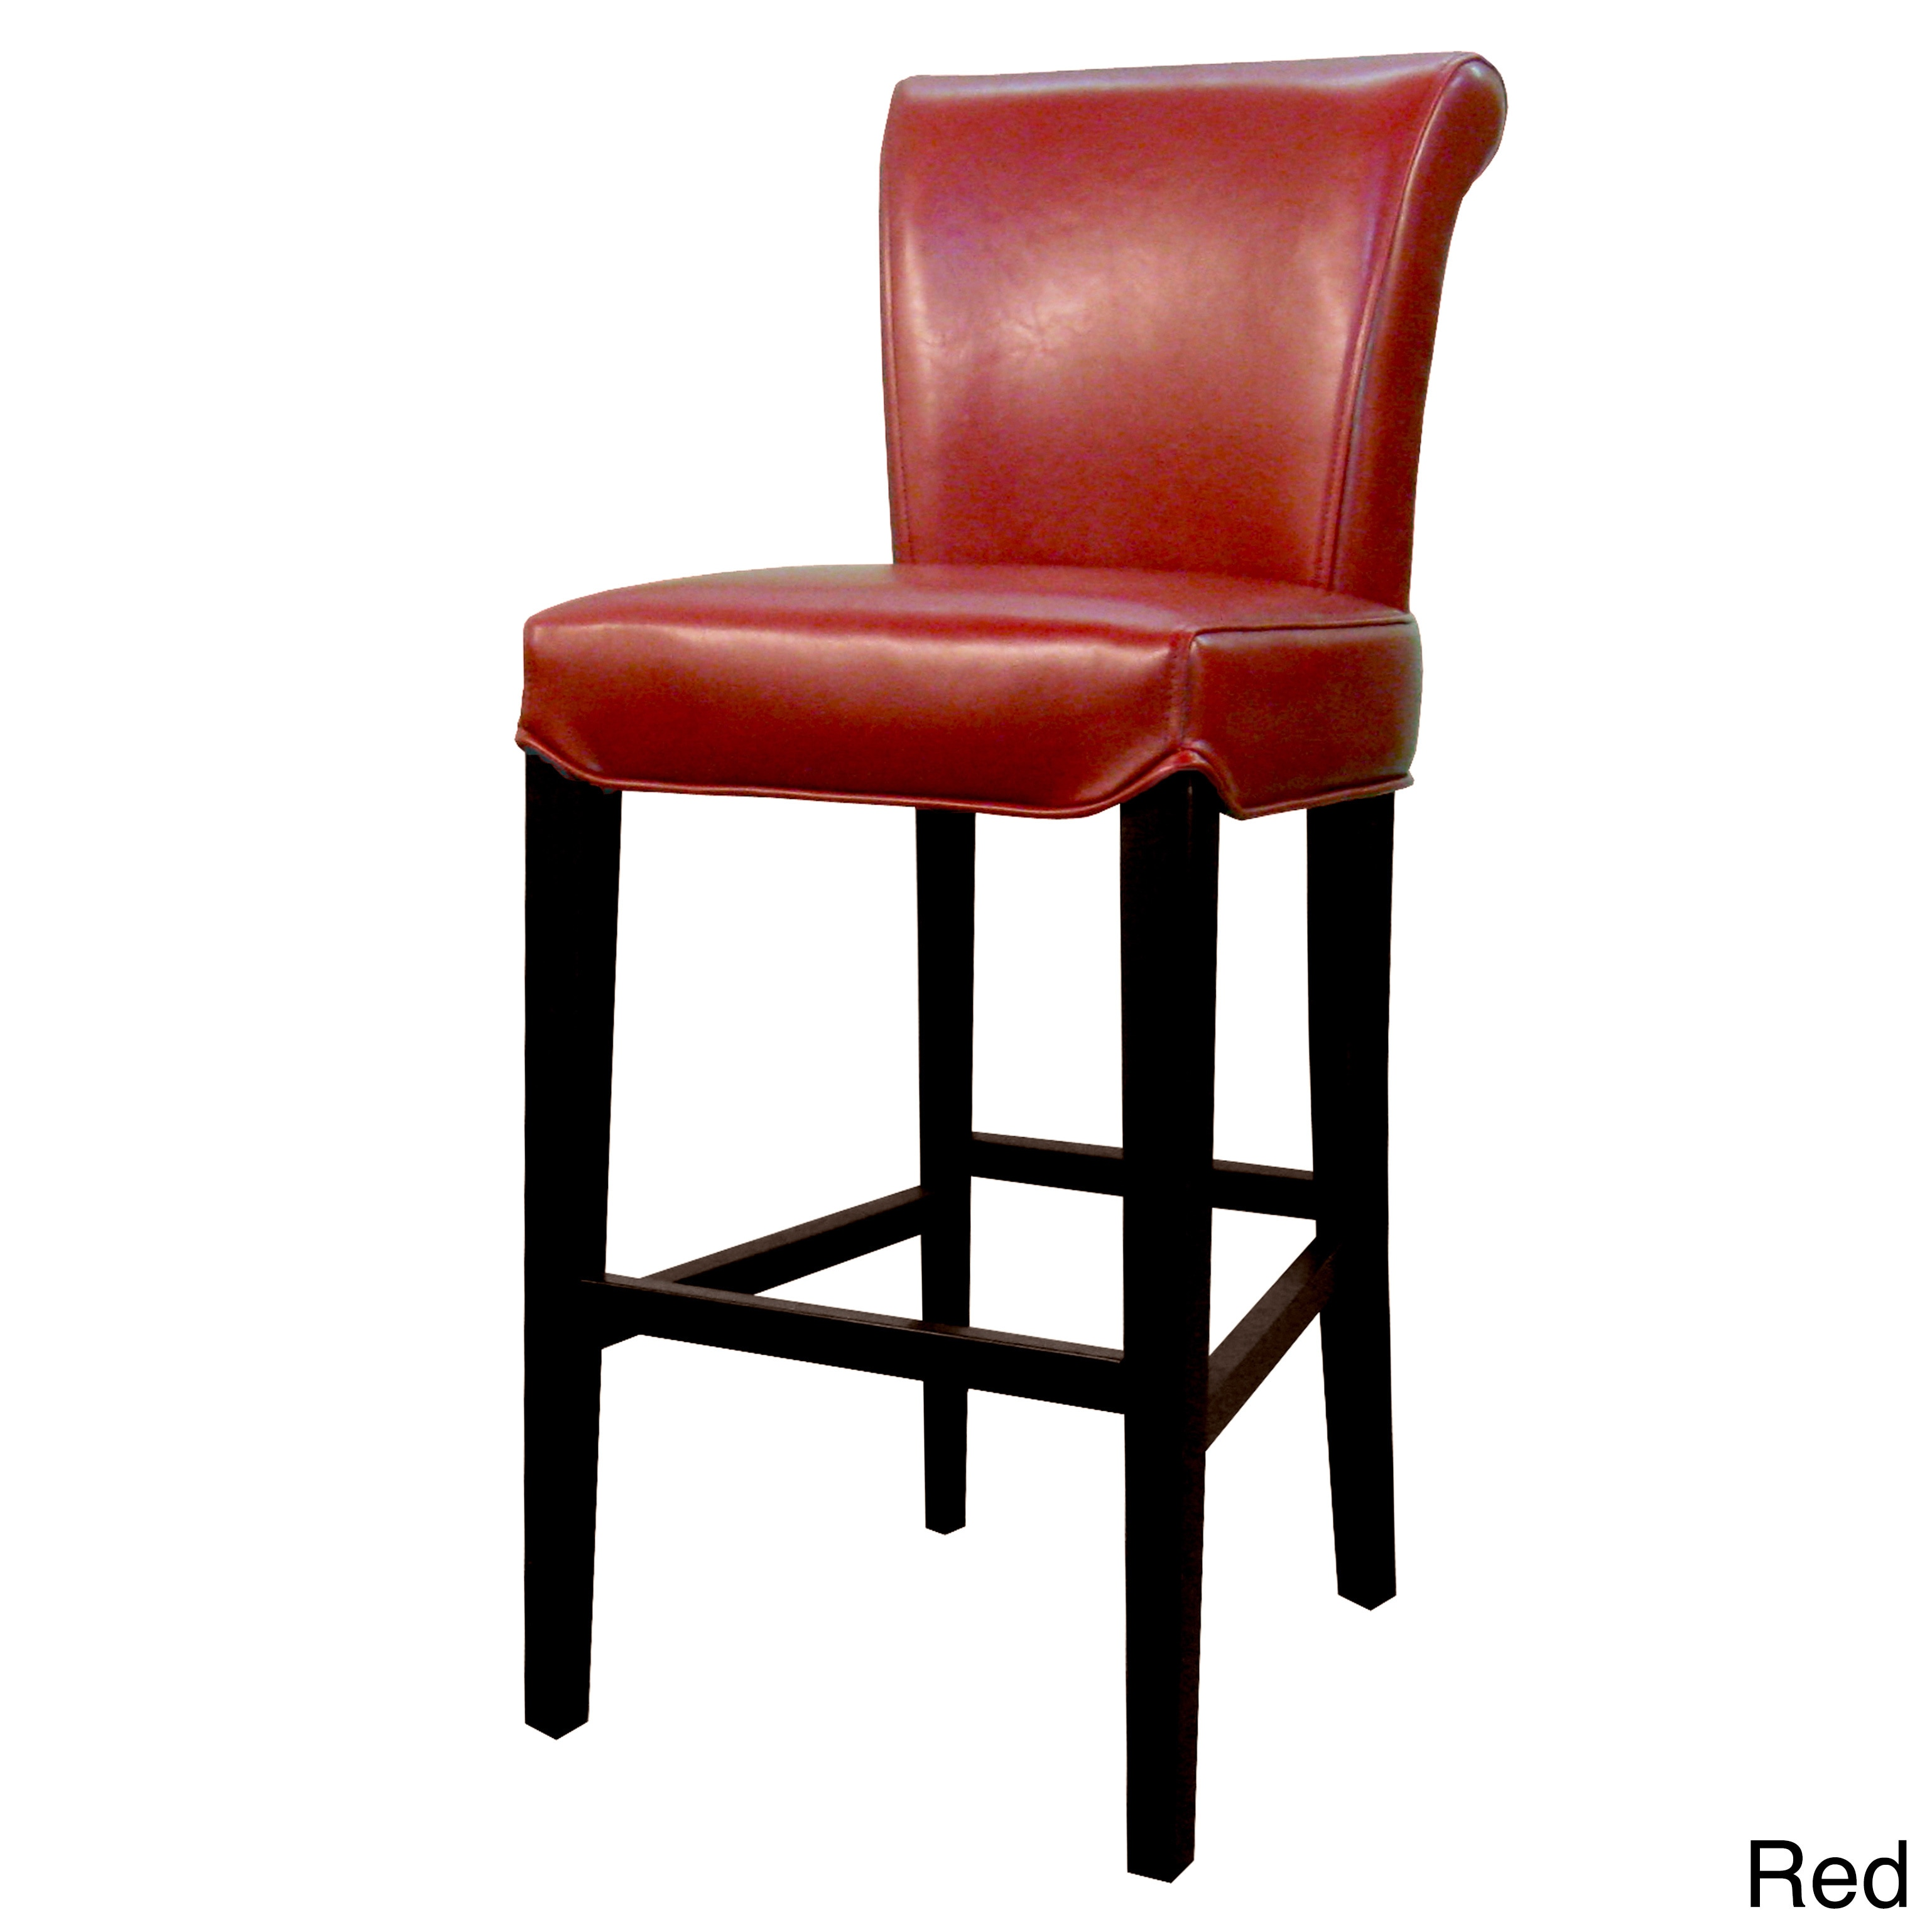 Shop bentley leather counter stool on sale free shipping today overstock com 10246266